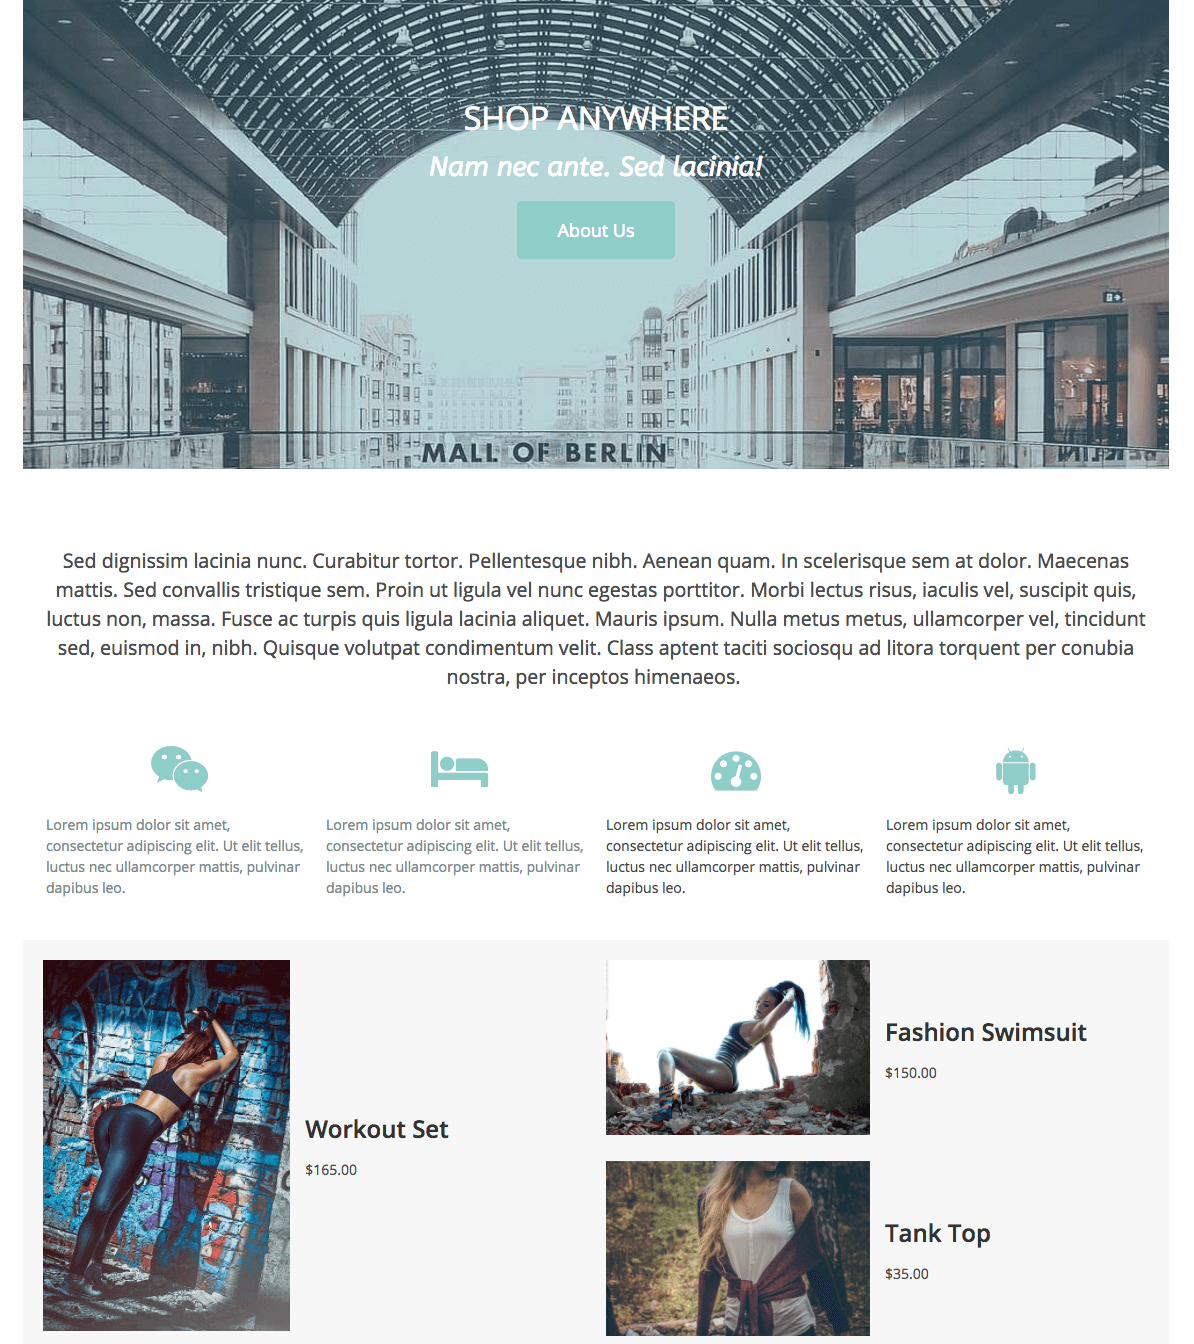 Free Elementor Home Templates By FFWD Fast Fix Web Design - Free ad templates online